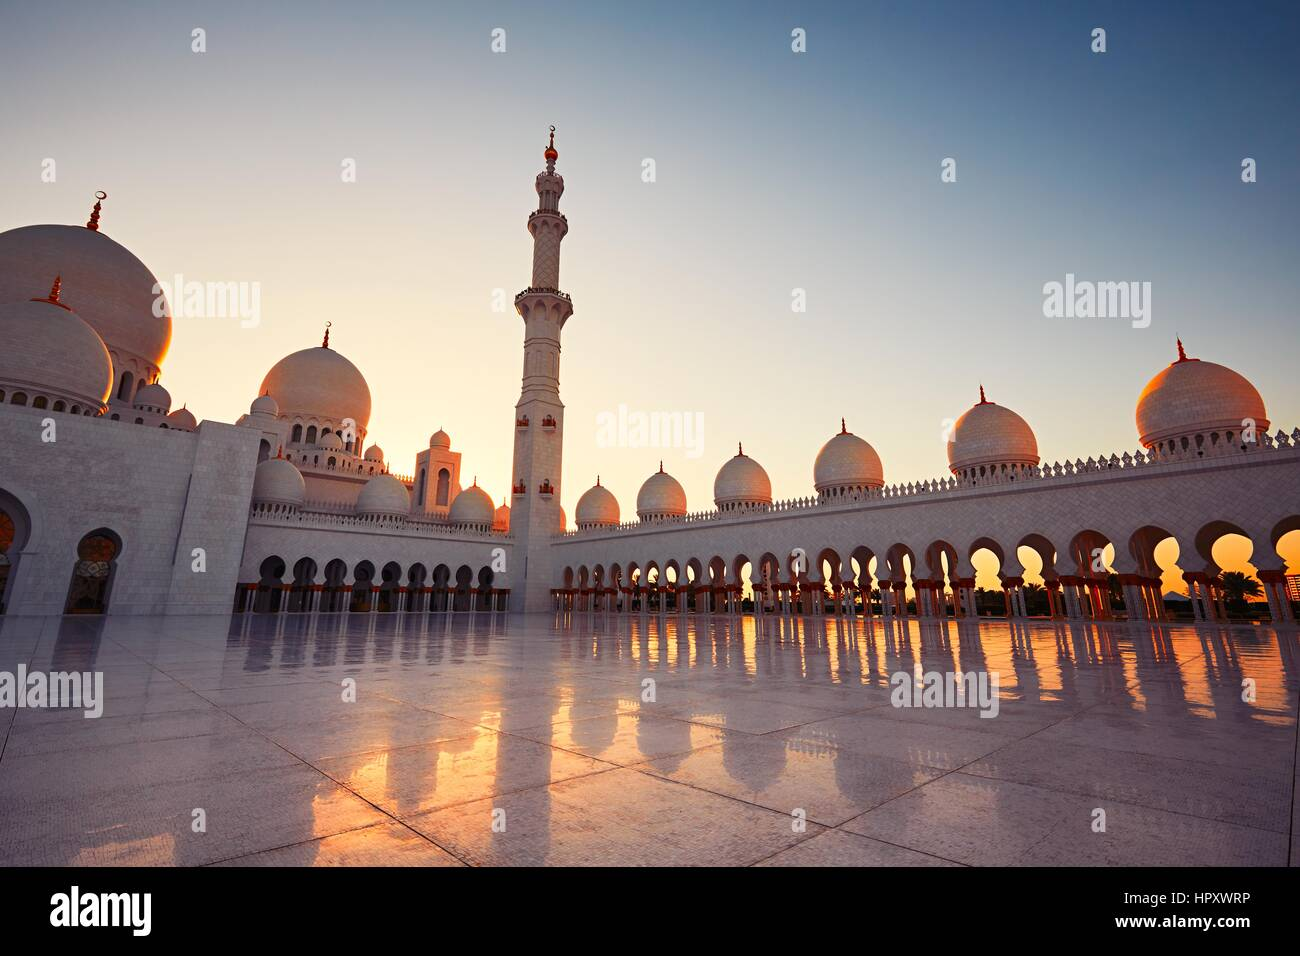 ABU DHABI, UNITED ARAB EMIRATES - April 19: Court yard and minaret of the Sheikh Zayed Grand Mosque on April 19 - Stock Image